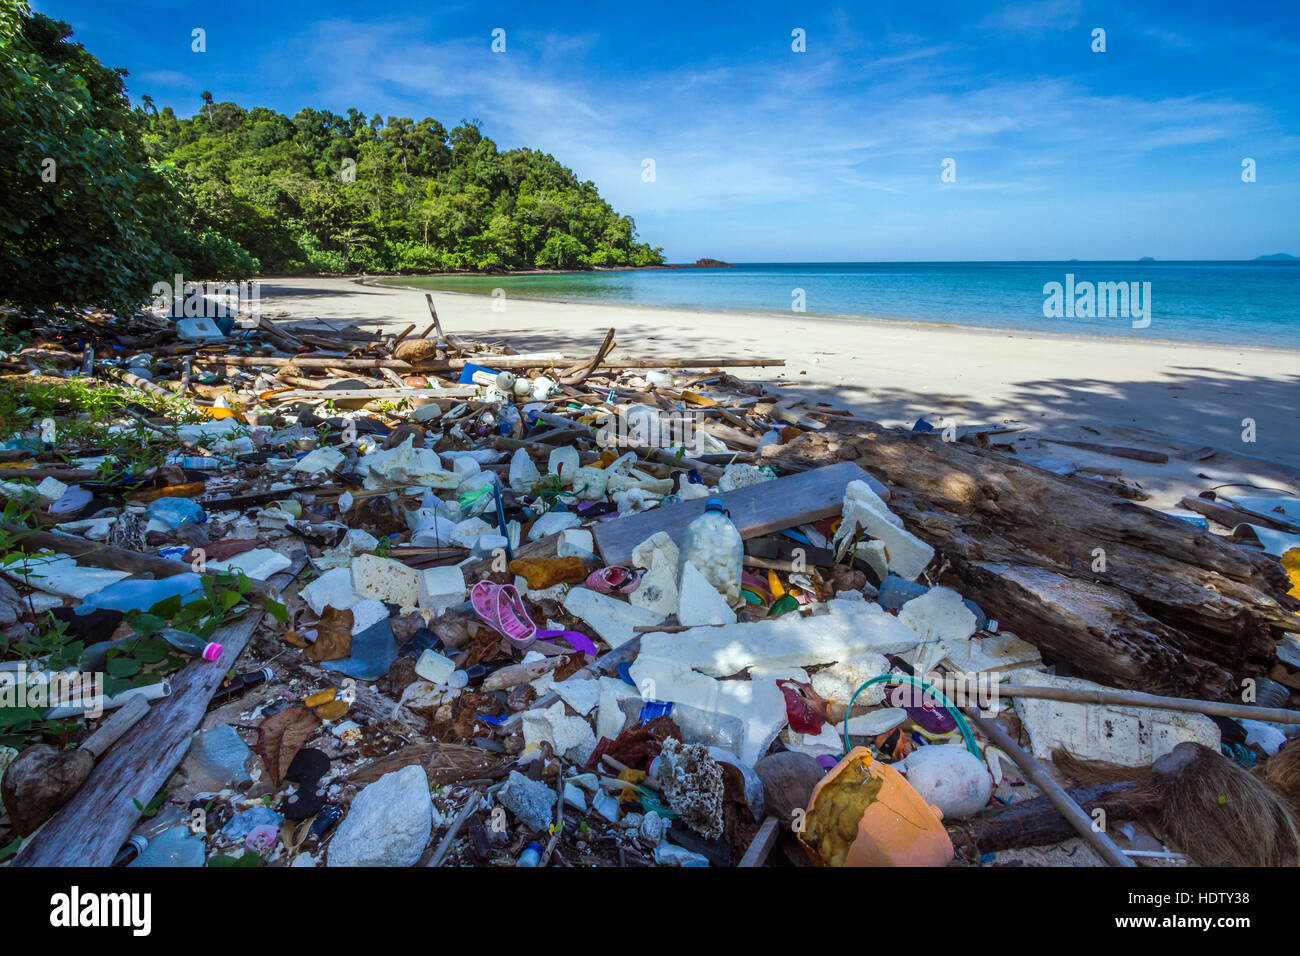 Polluted beach with rubbish in national park of Thailand Stock Photo